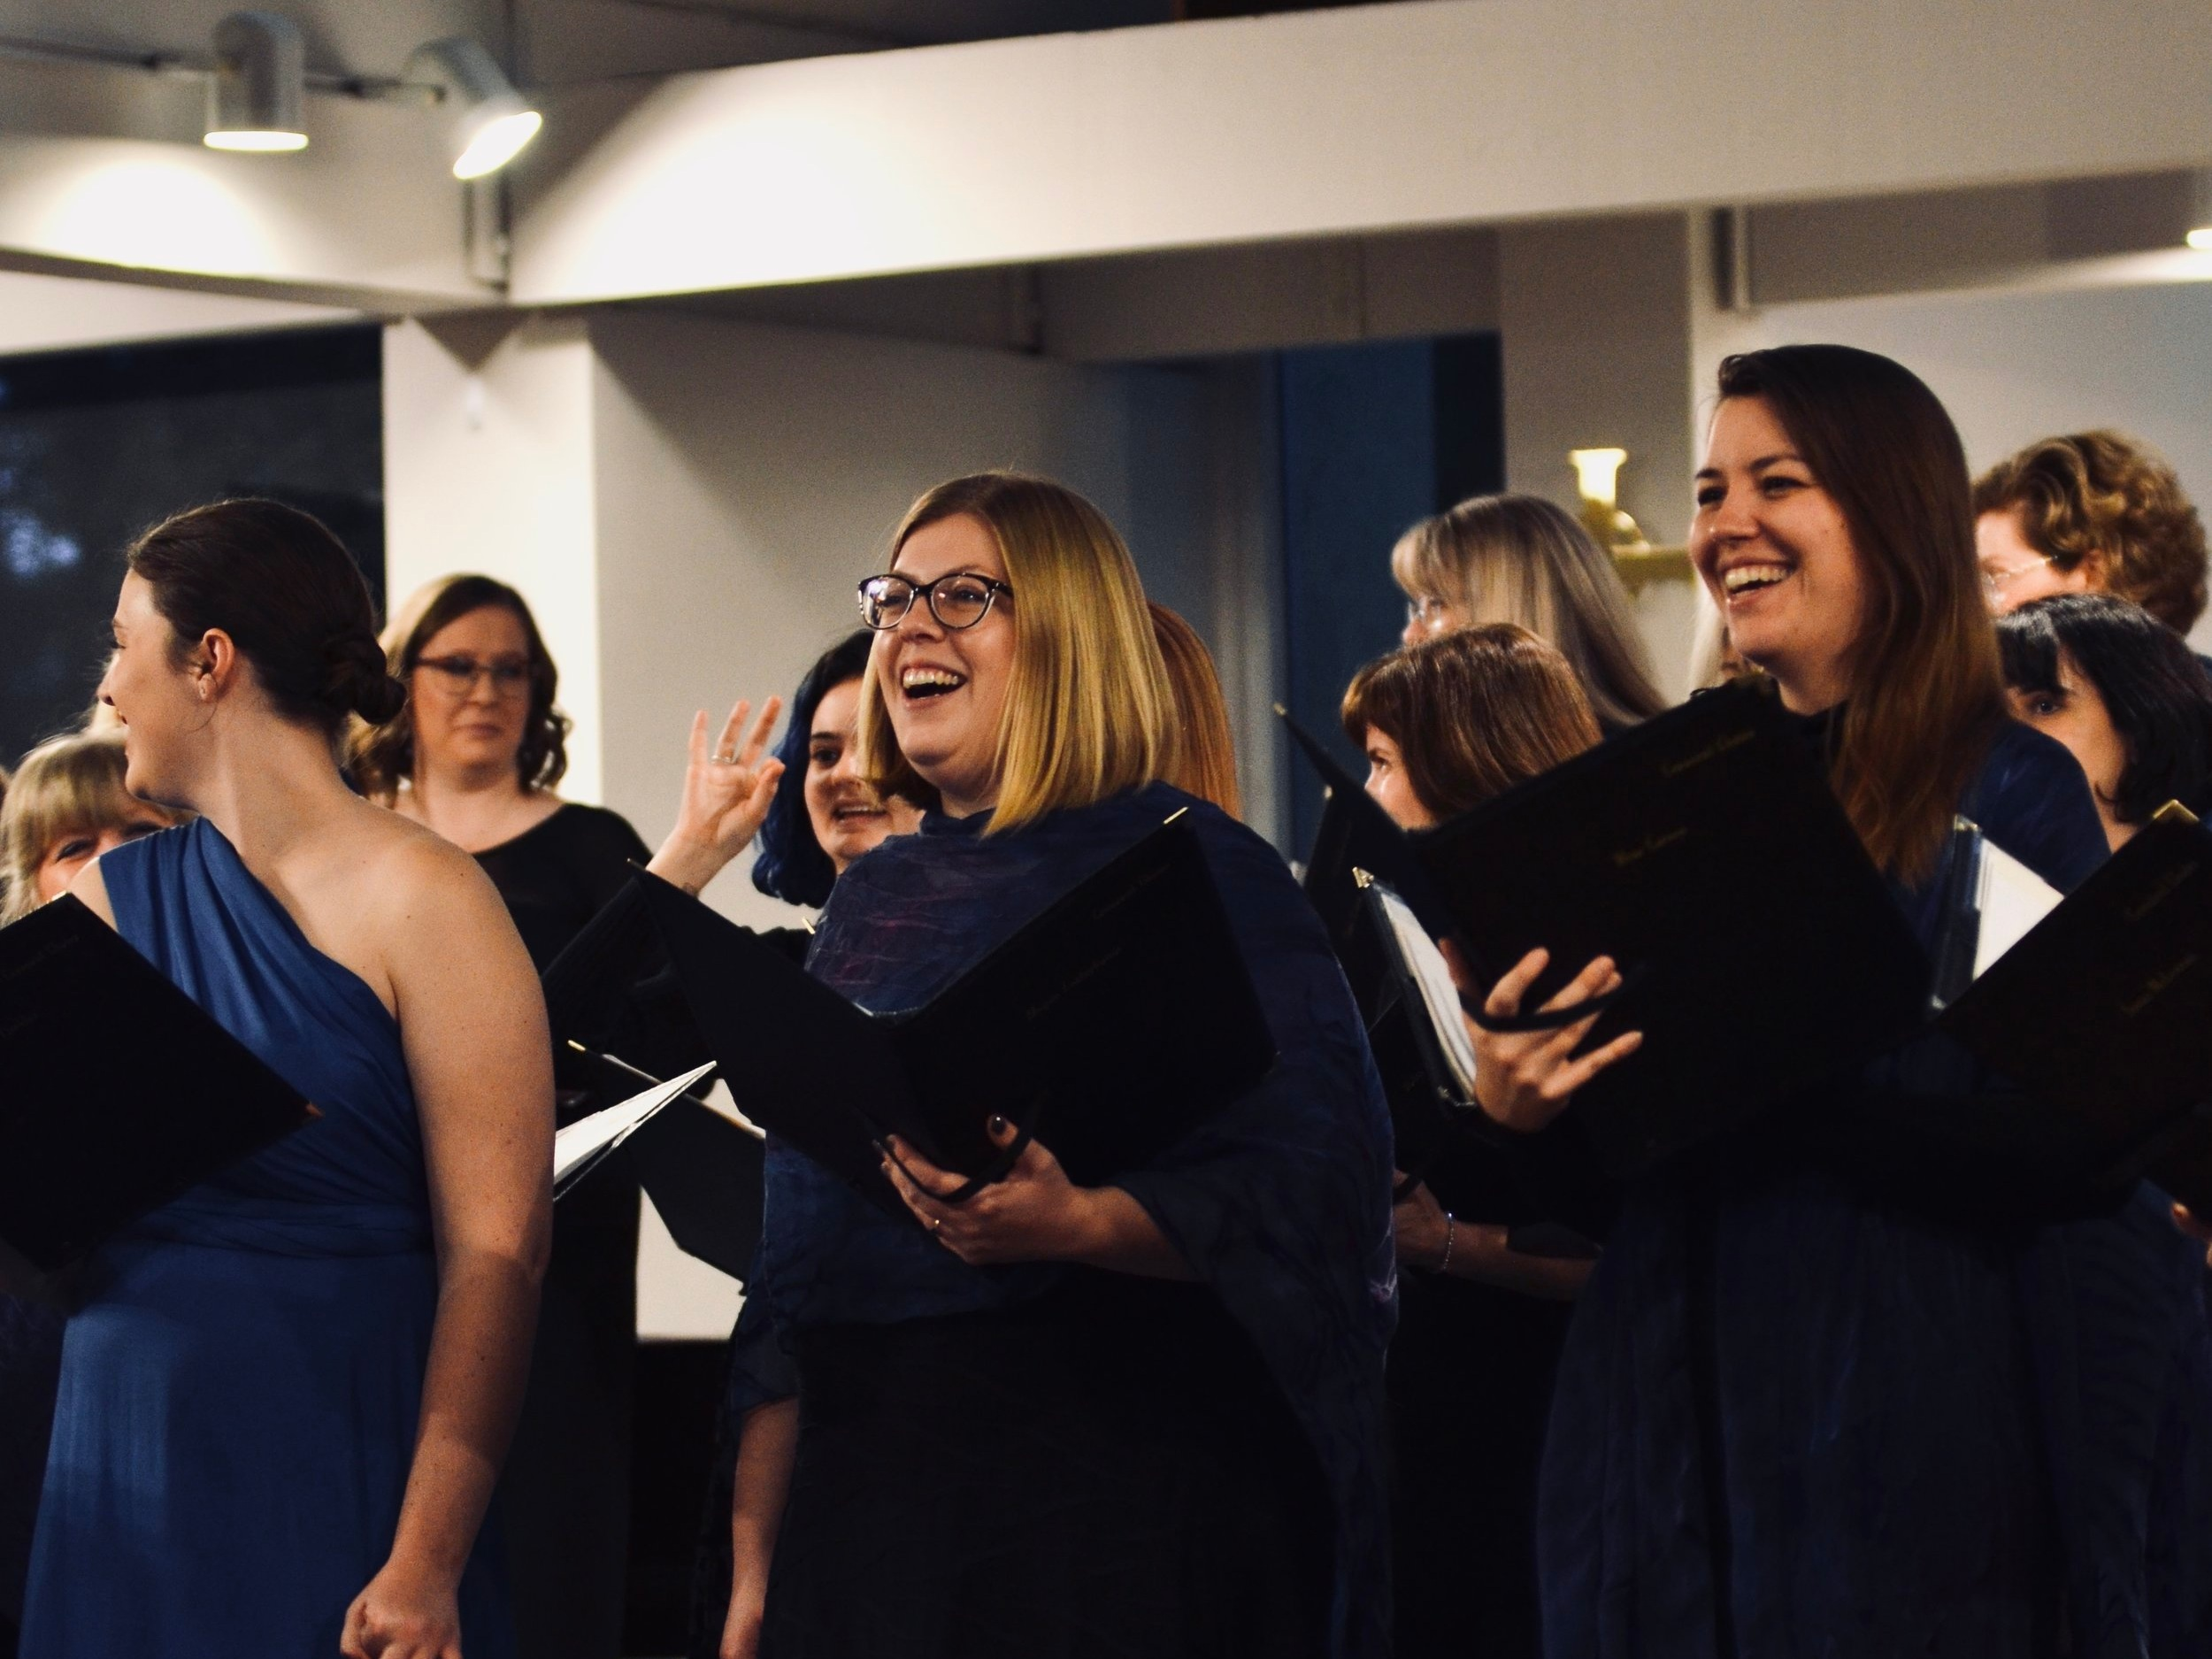 Luna Vocal Ensemble - Auditioned women's chamber choir for adult singers. Grades 11 and 12 singers may also be considered. Read more about the ensemble here! Sign up to audition for the 2019/2020 season.